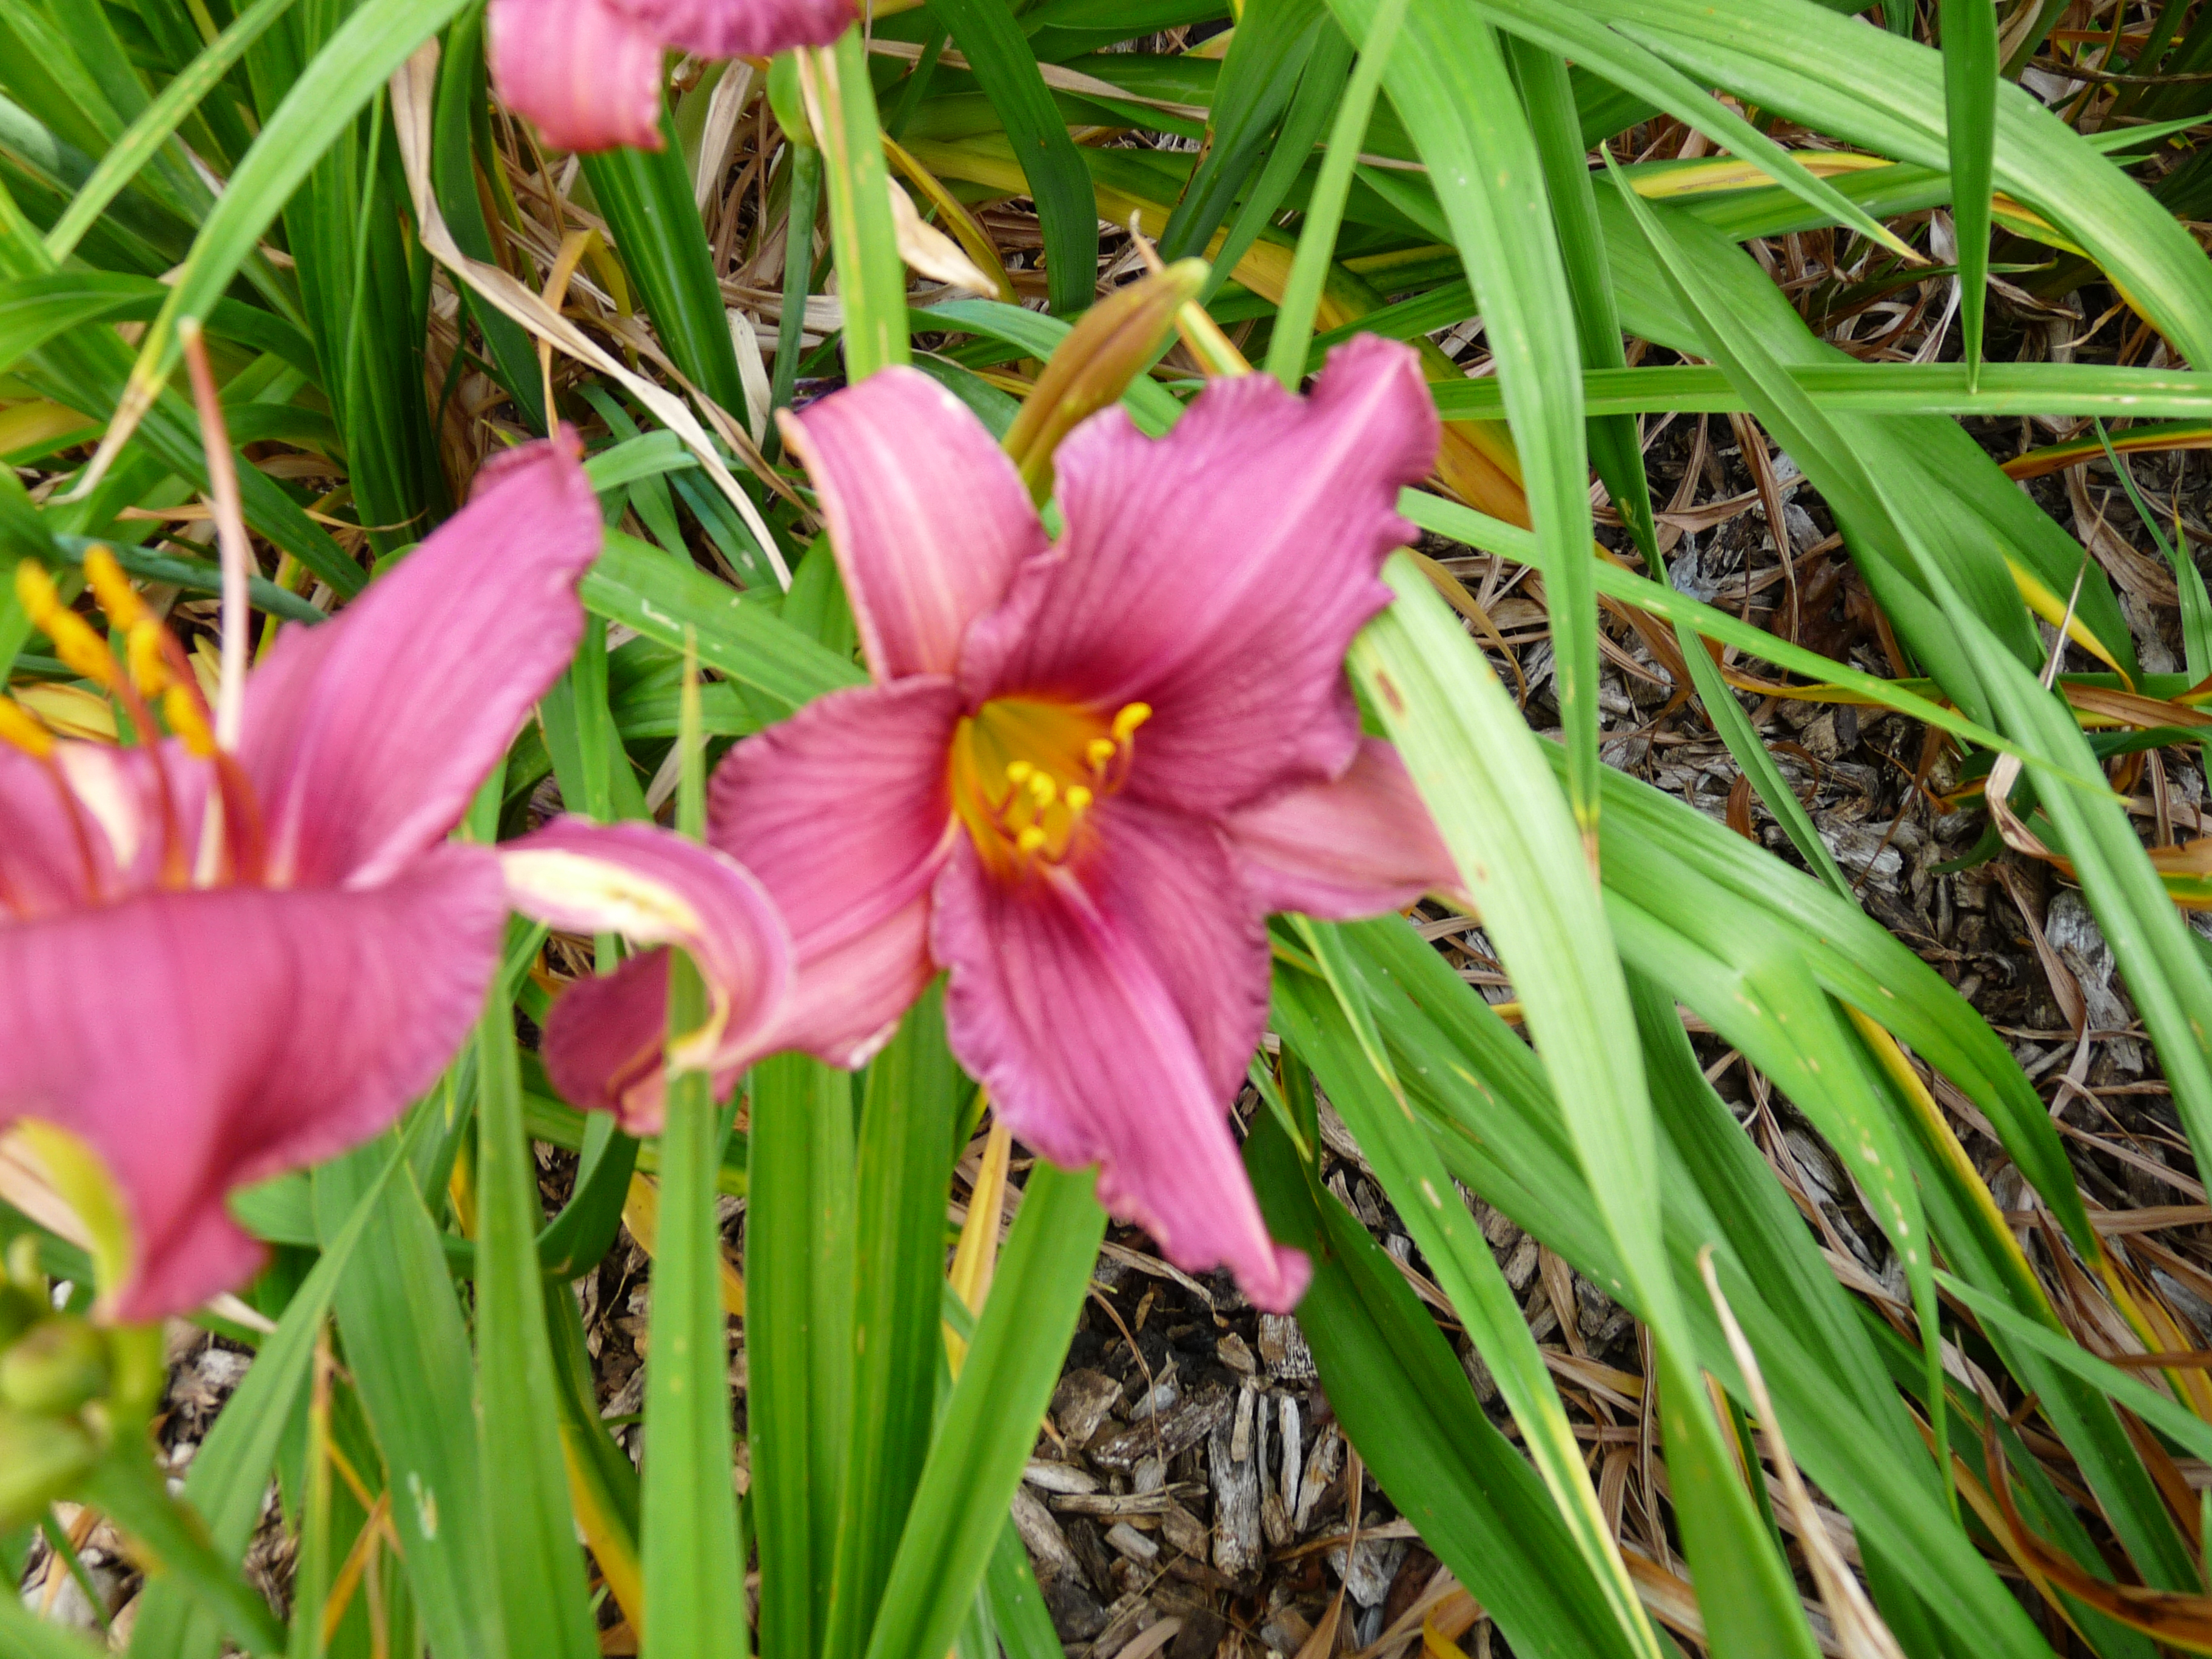 nature, flower, plant, lily